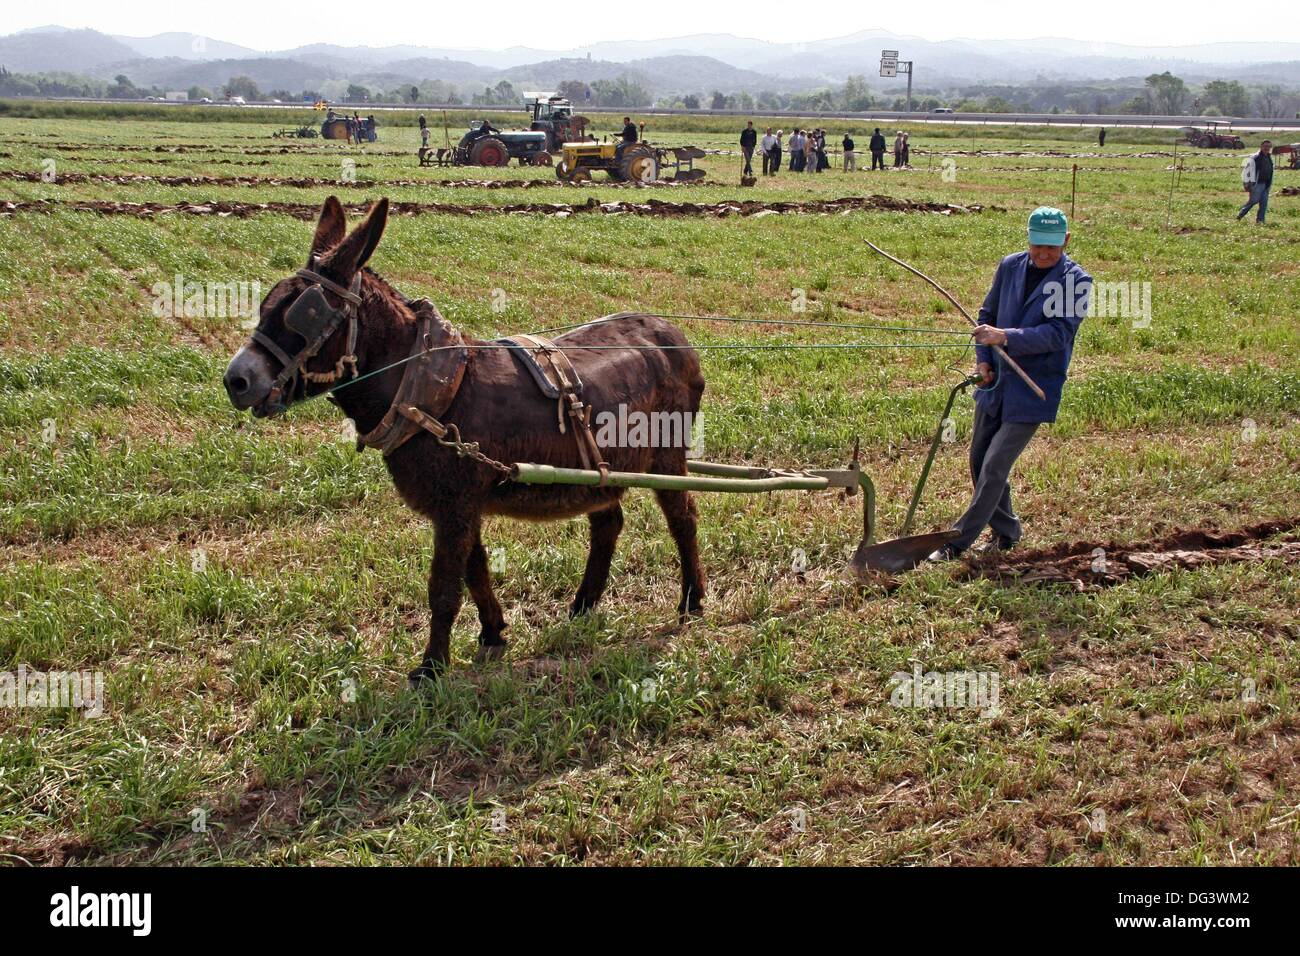 donkey with a plow agricultural work stock photo royalty free image 61551618 alamy. Black Bedroom Furniture Sets. Home Design Ideas